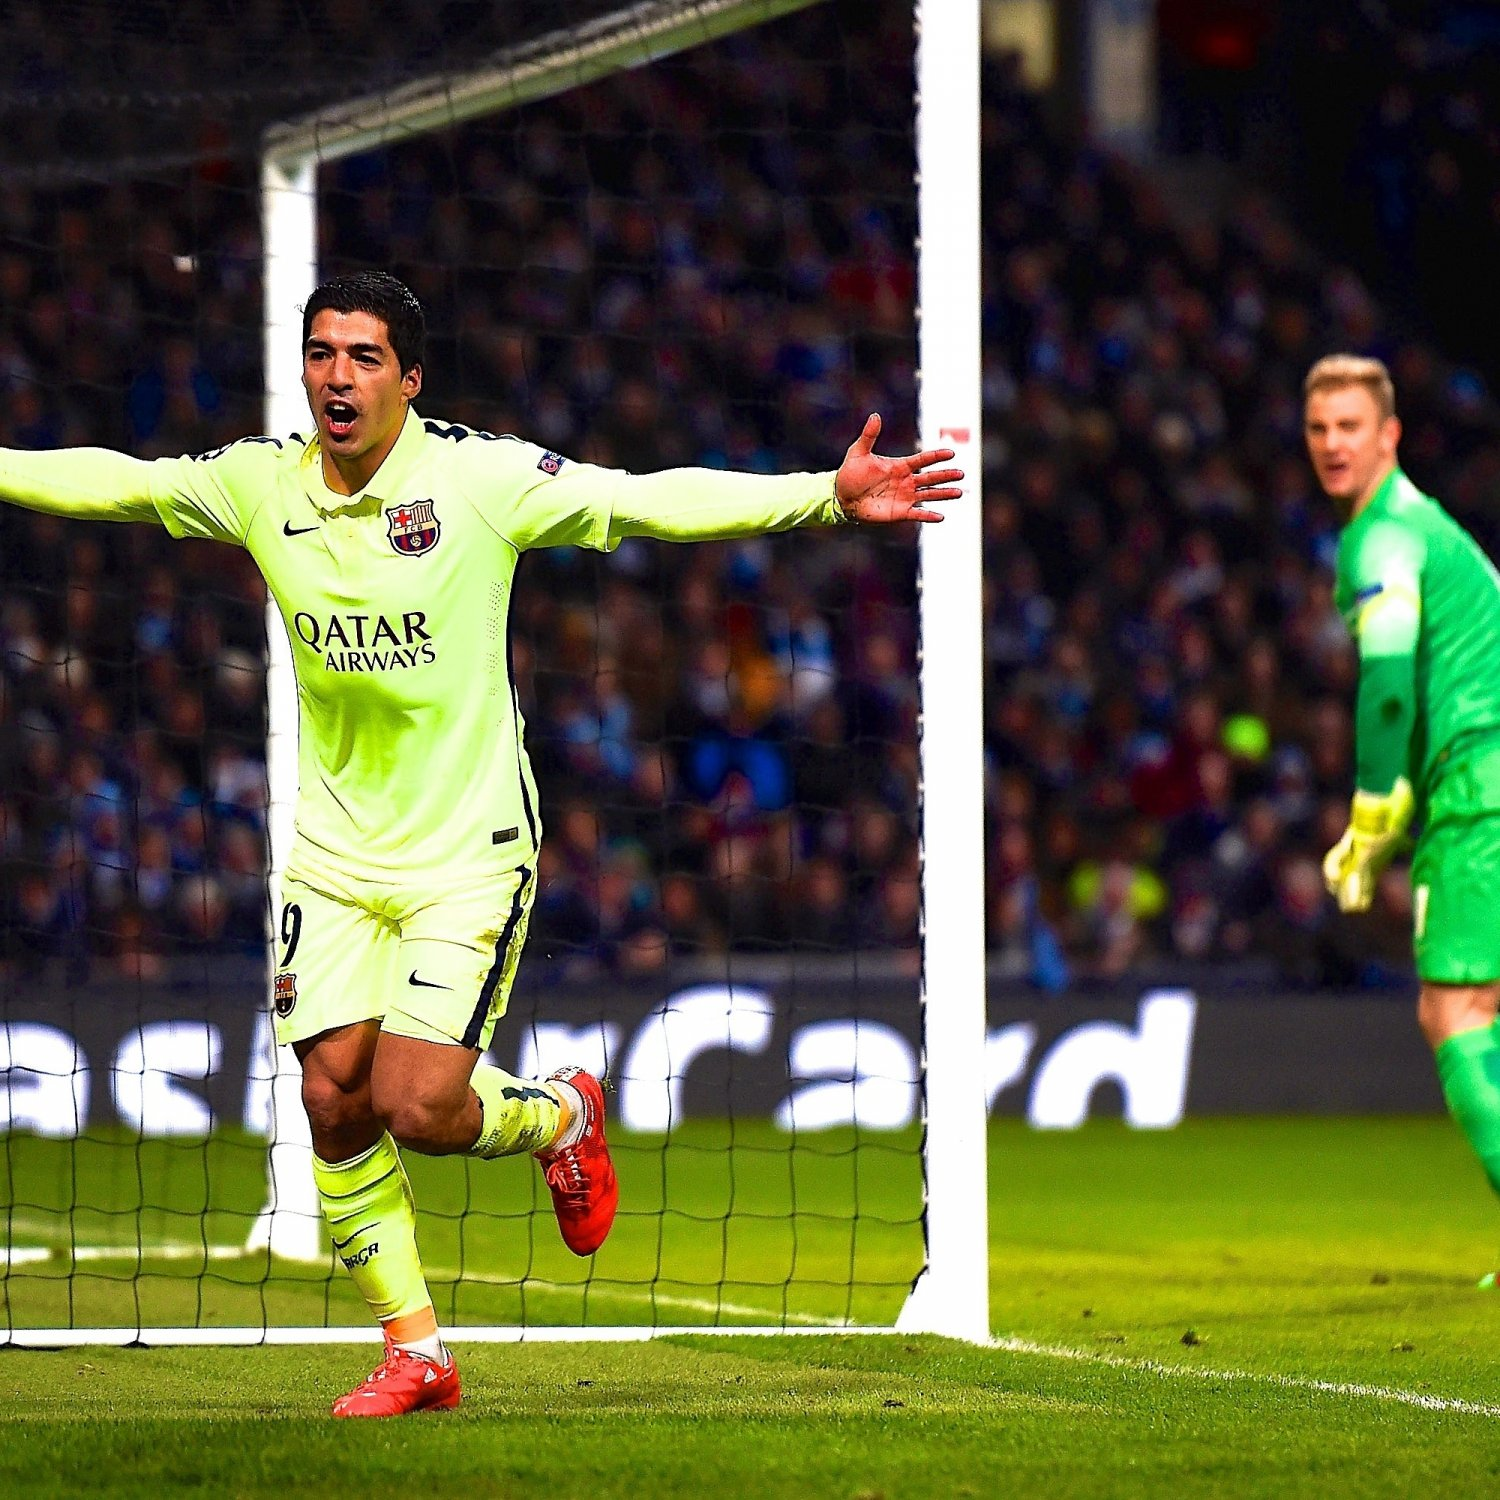 Psg Vs Manchester City Live Score Highlights From: Manchester City Vs. Barcelona: Live Score, Highlights From